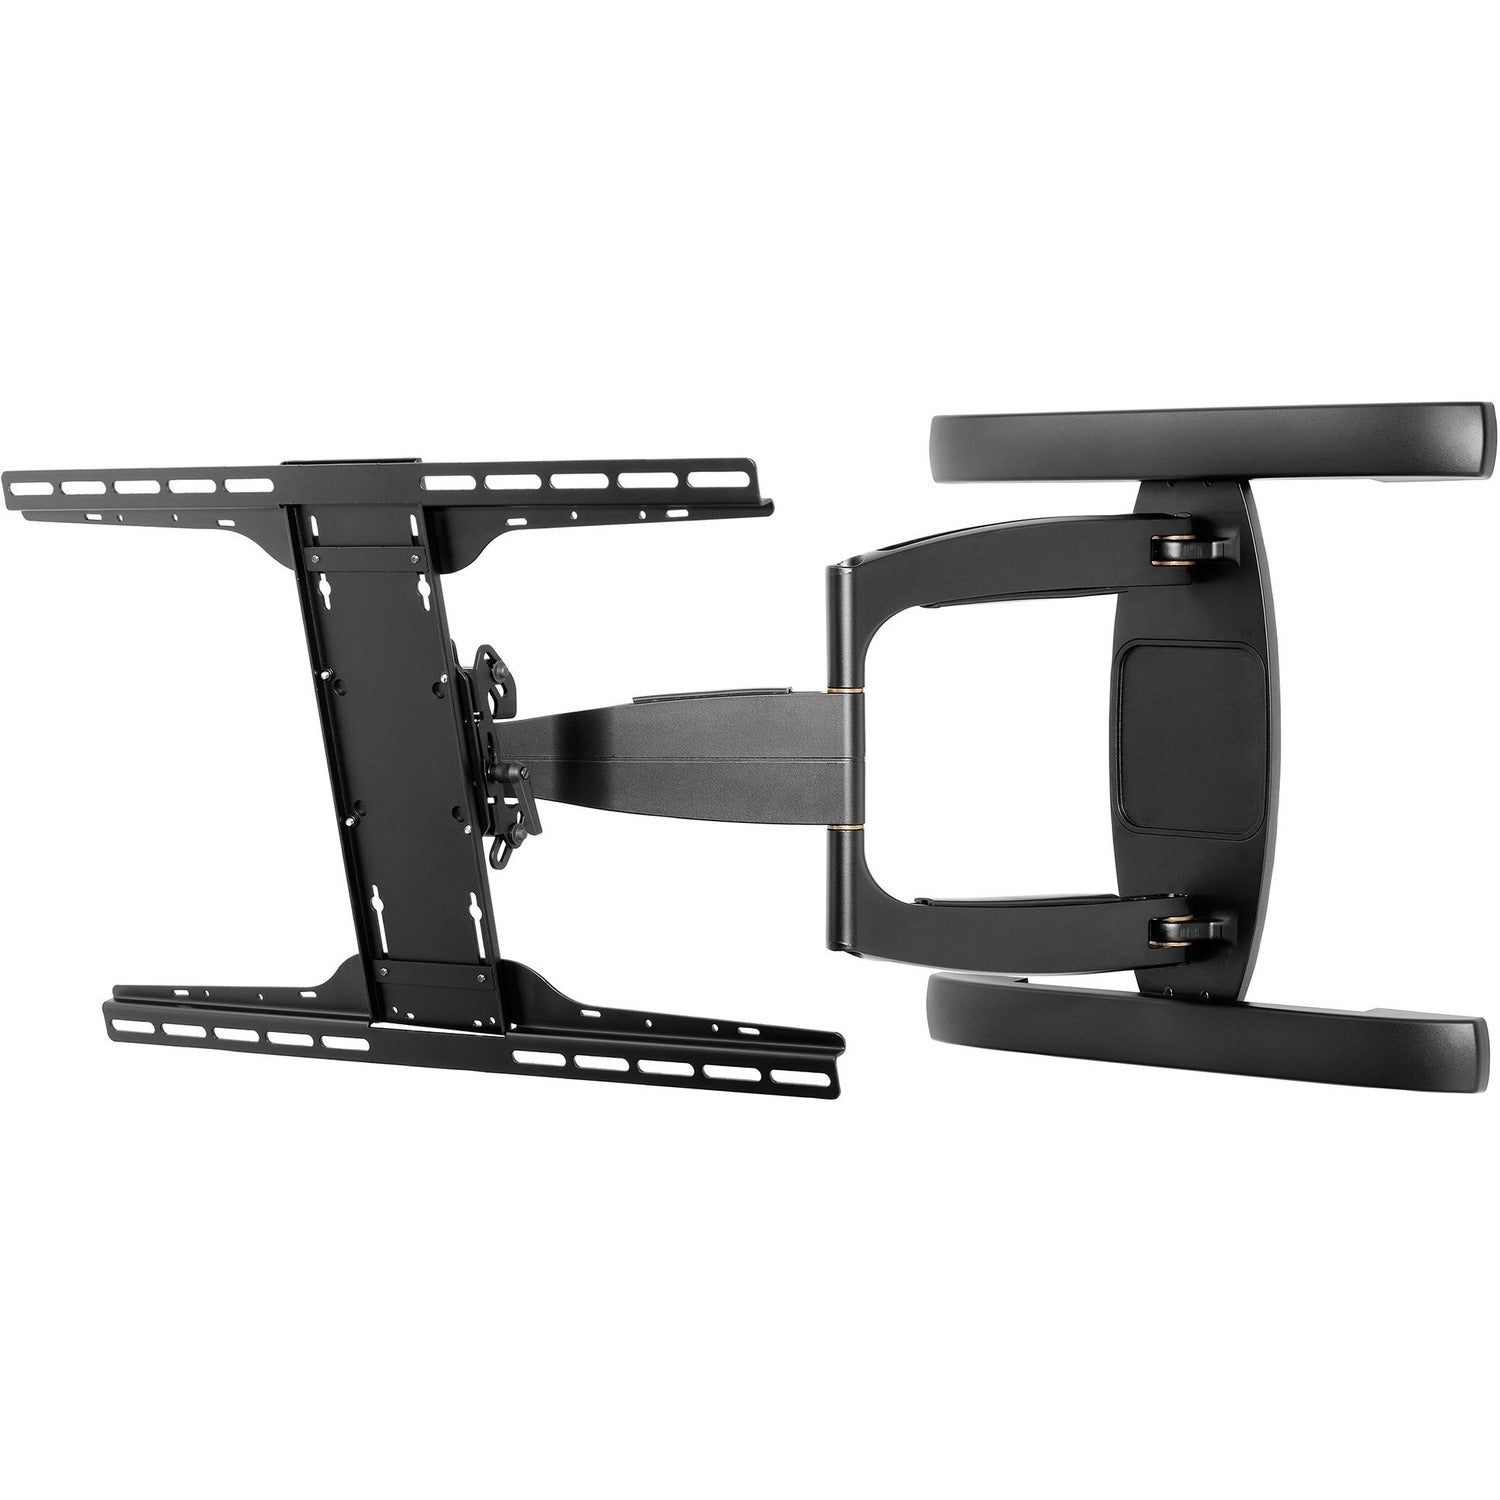 Peerless-AV SmartMount SA761PU Mounting Arm for Flat Panel Display